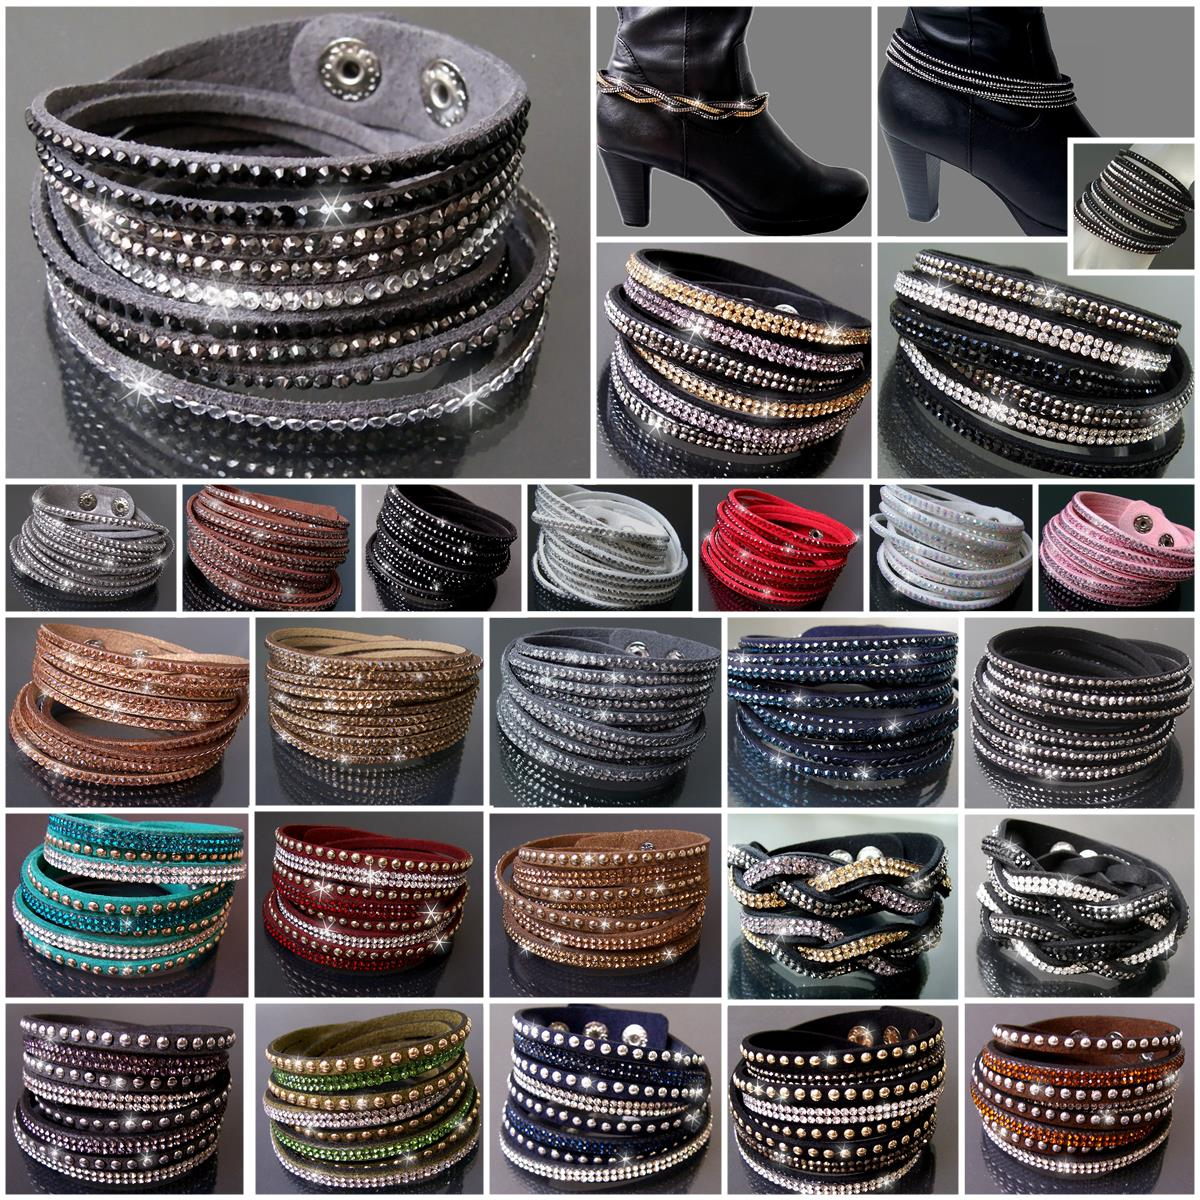 VA22* 12-reihiges Wickelarmband LederLook Strass